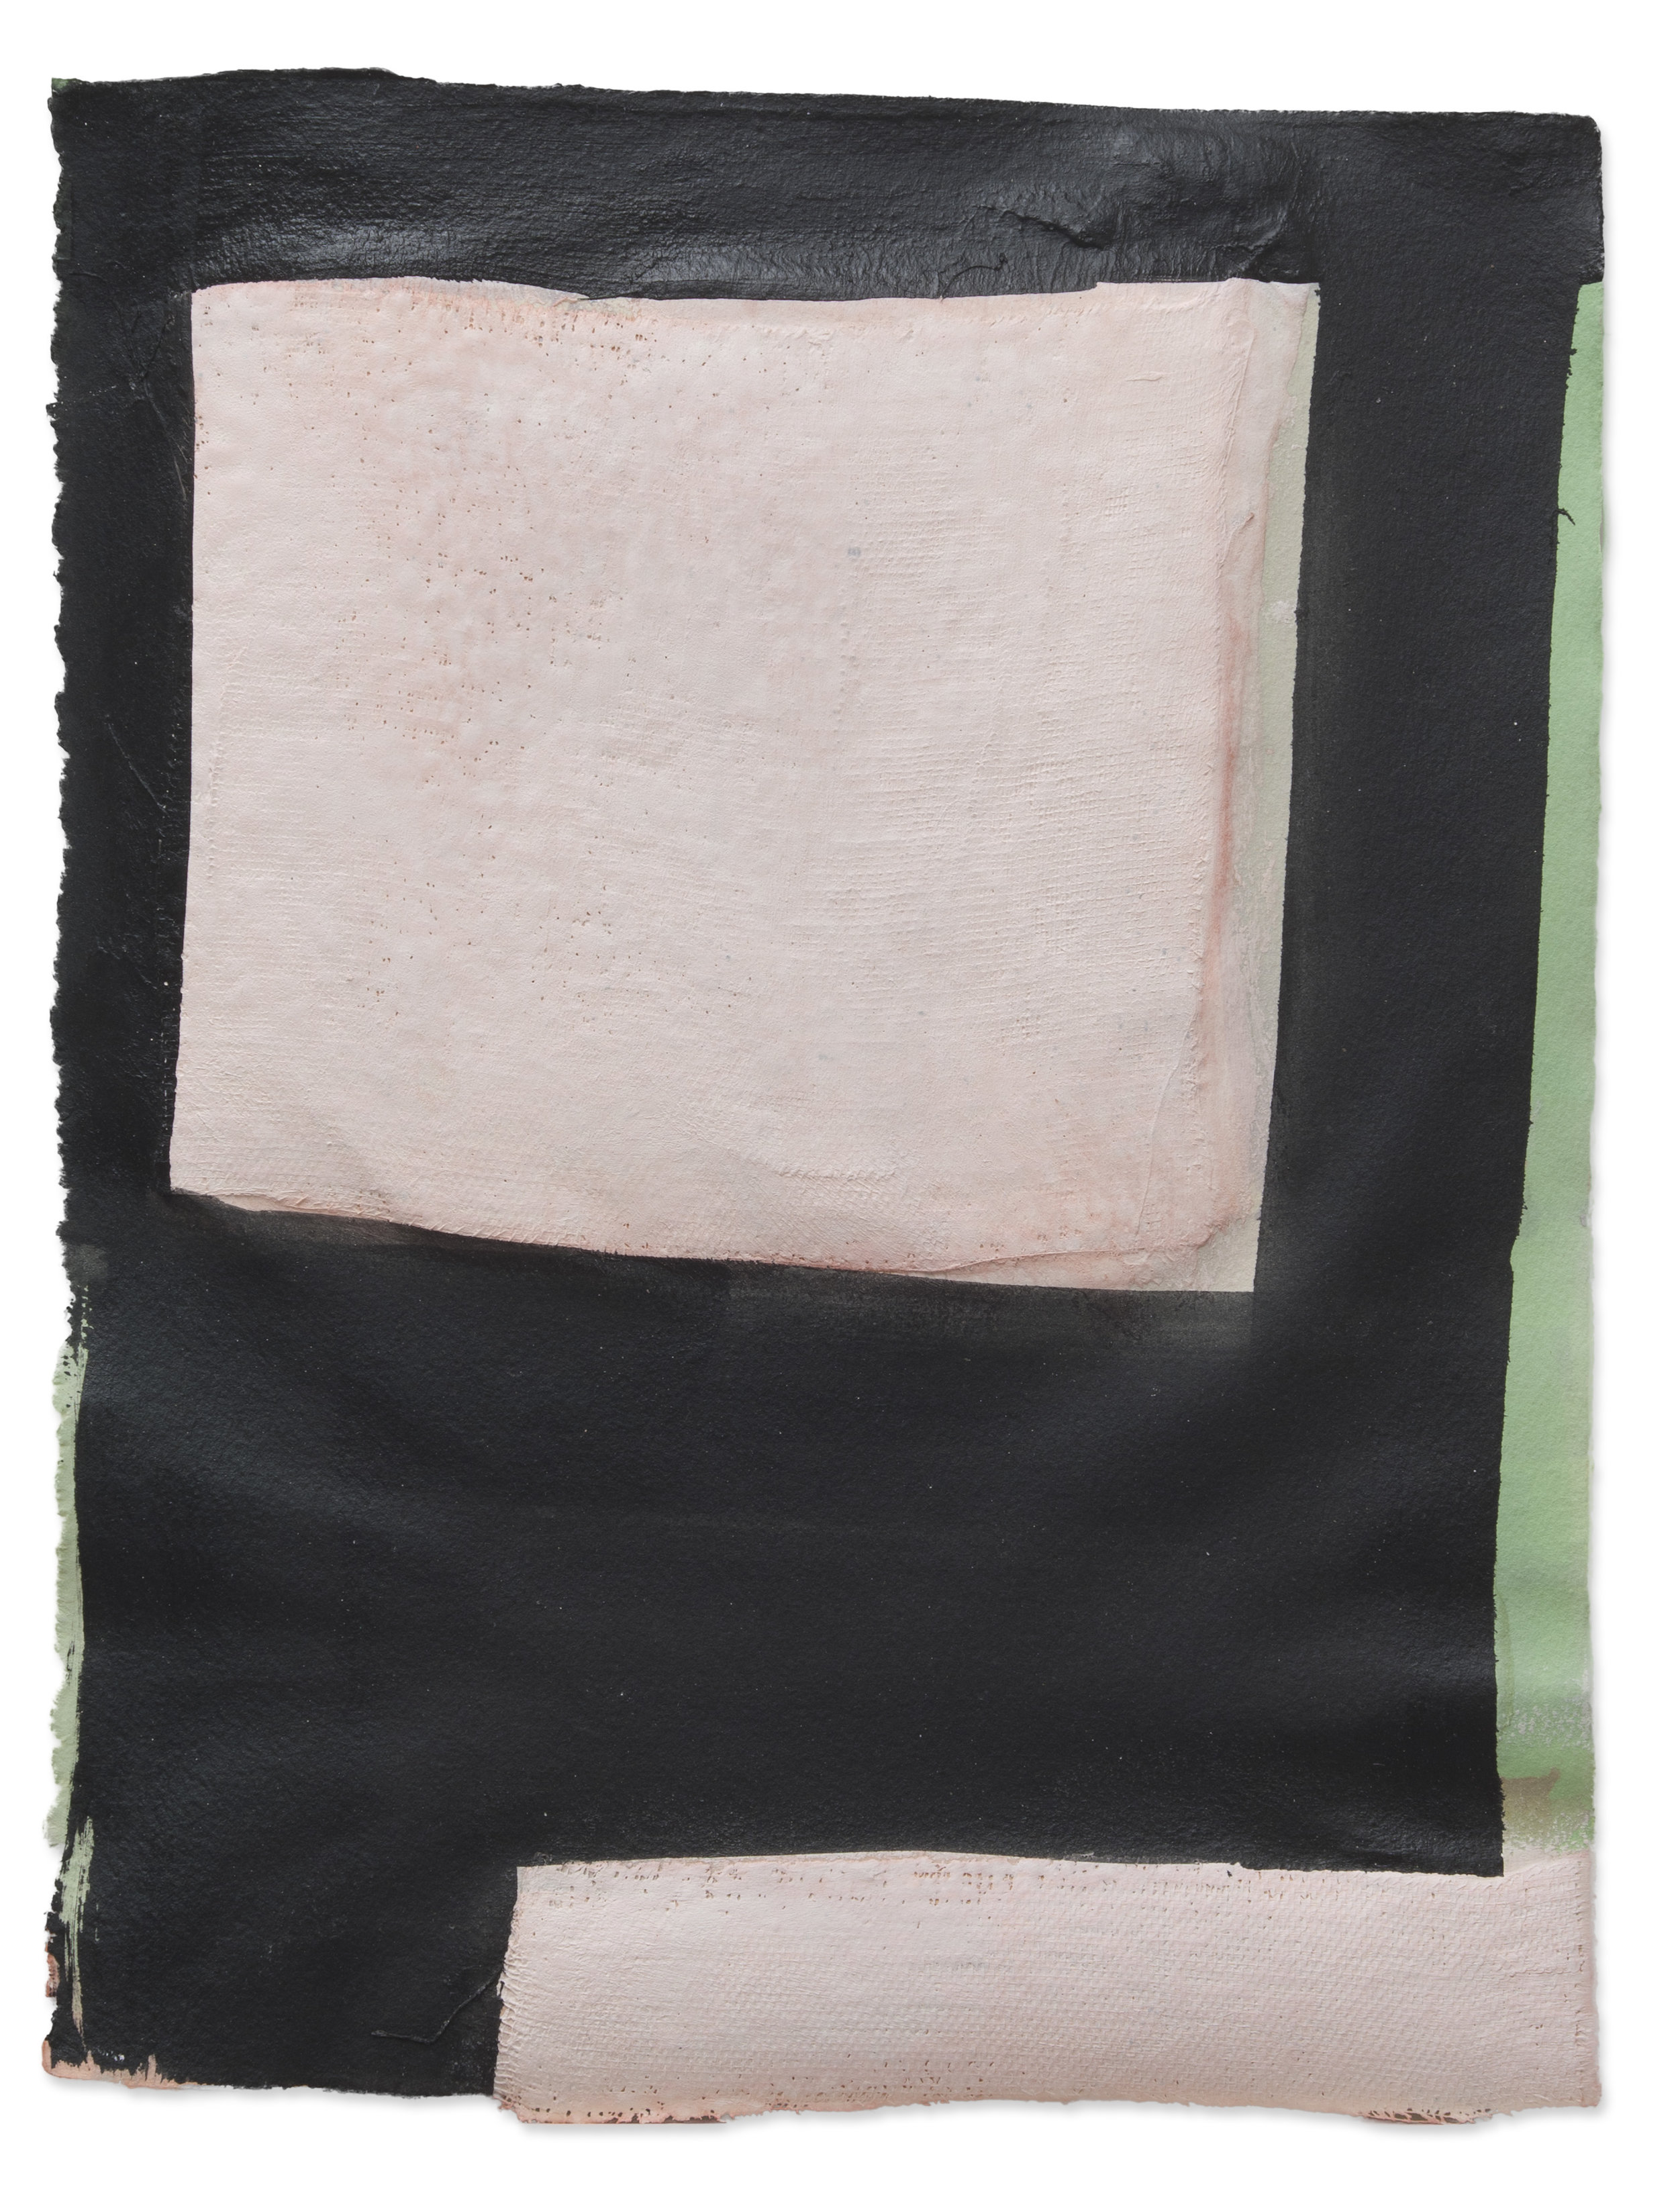 Pink Squared, 2018, plaster, paint on paper, 14 x 18 in, $2,000